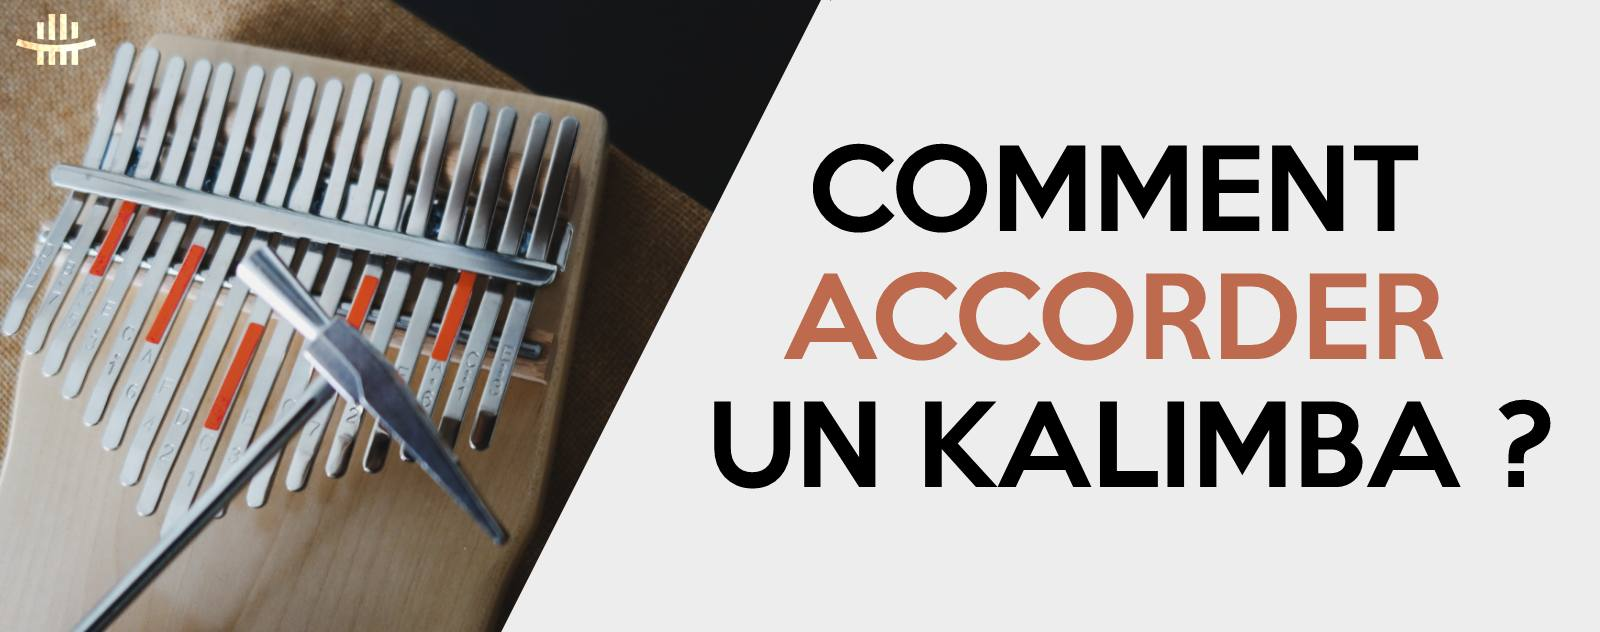 comment accorder un kalimba guide complet